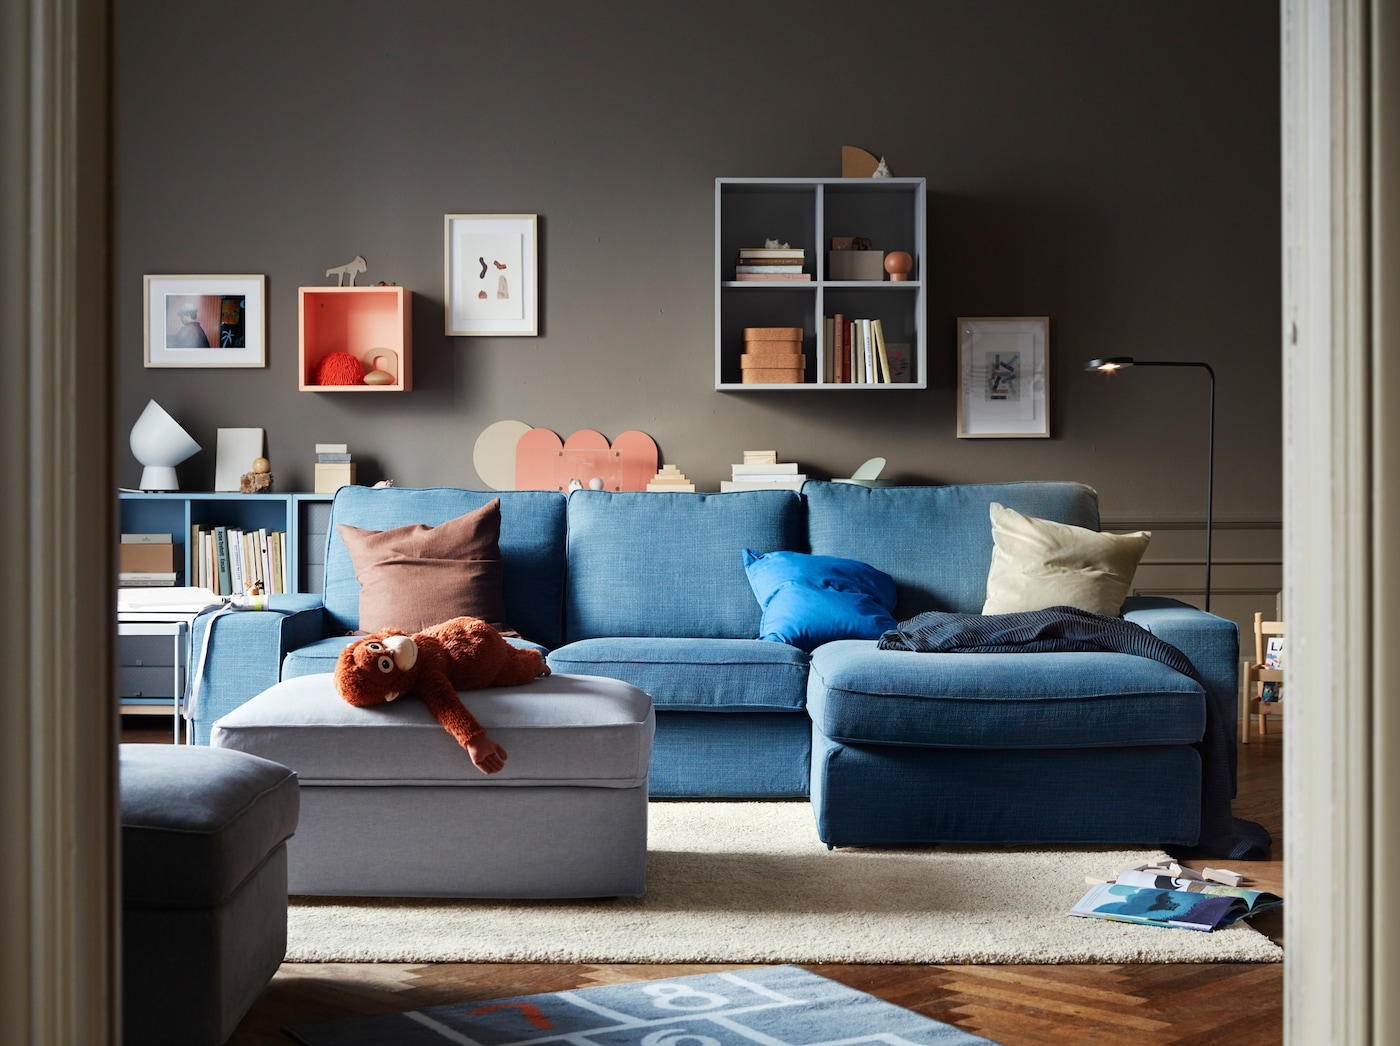 Lounge away in the living room with an IKEA KIVIK blue 3-seat sofa with chaise.This couch is soft with lots of cushions for back support.